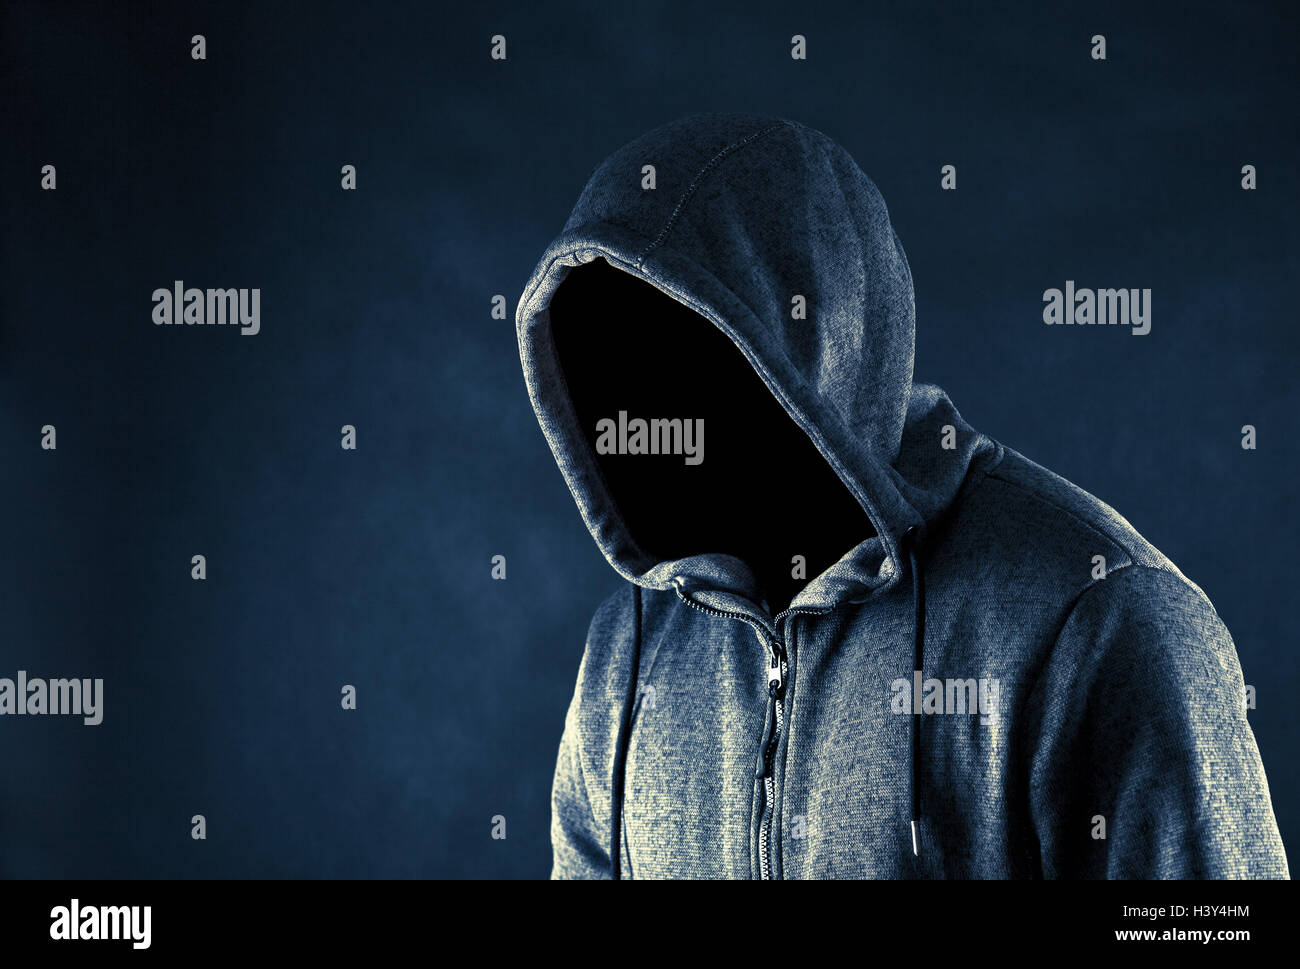 Hooded man in the dark - Stock Image